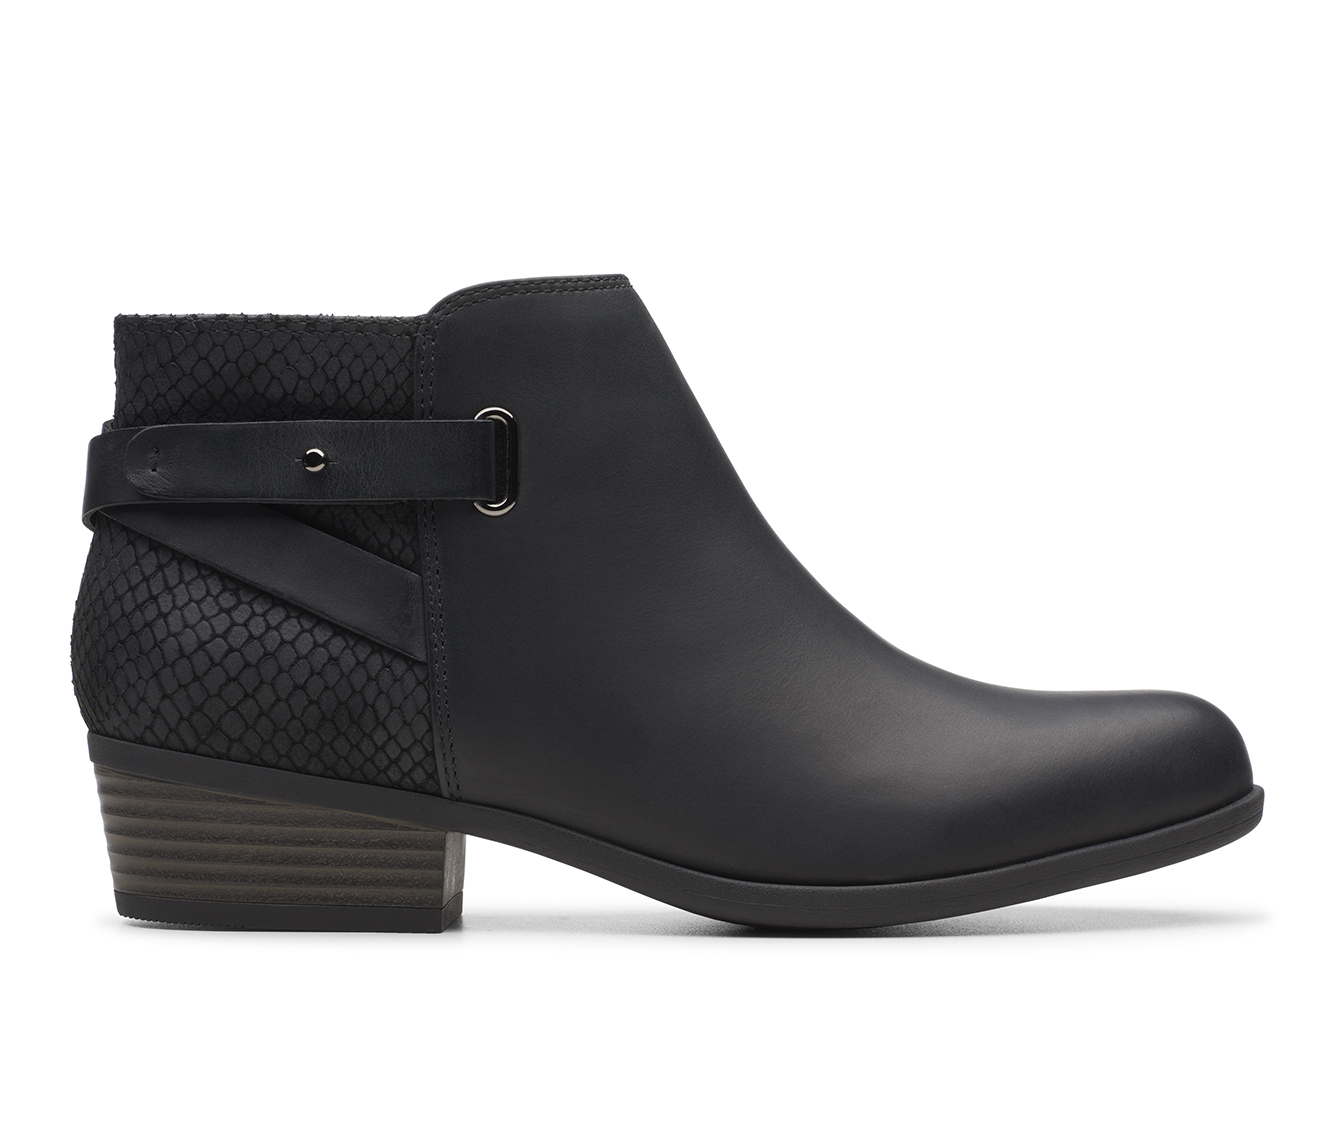 Clarks Addiy Gladys Women's Boots (Black - Leather)